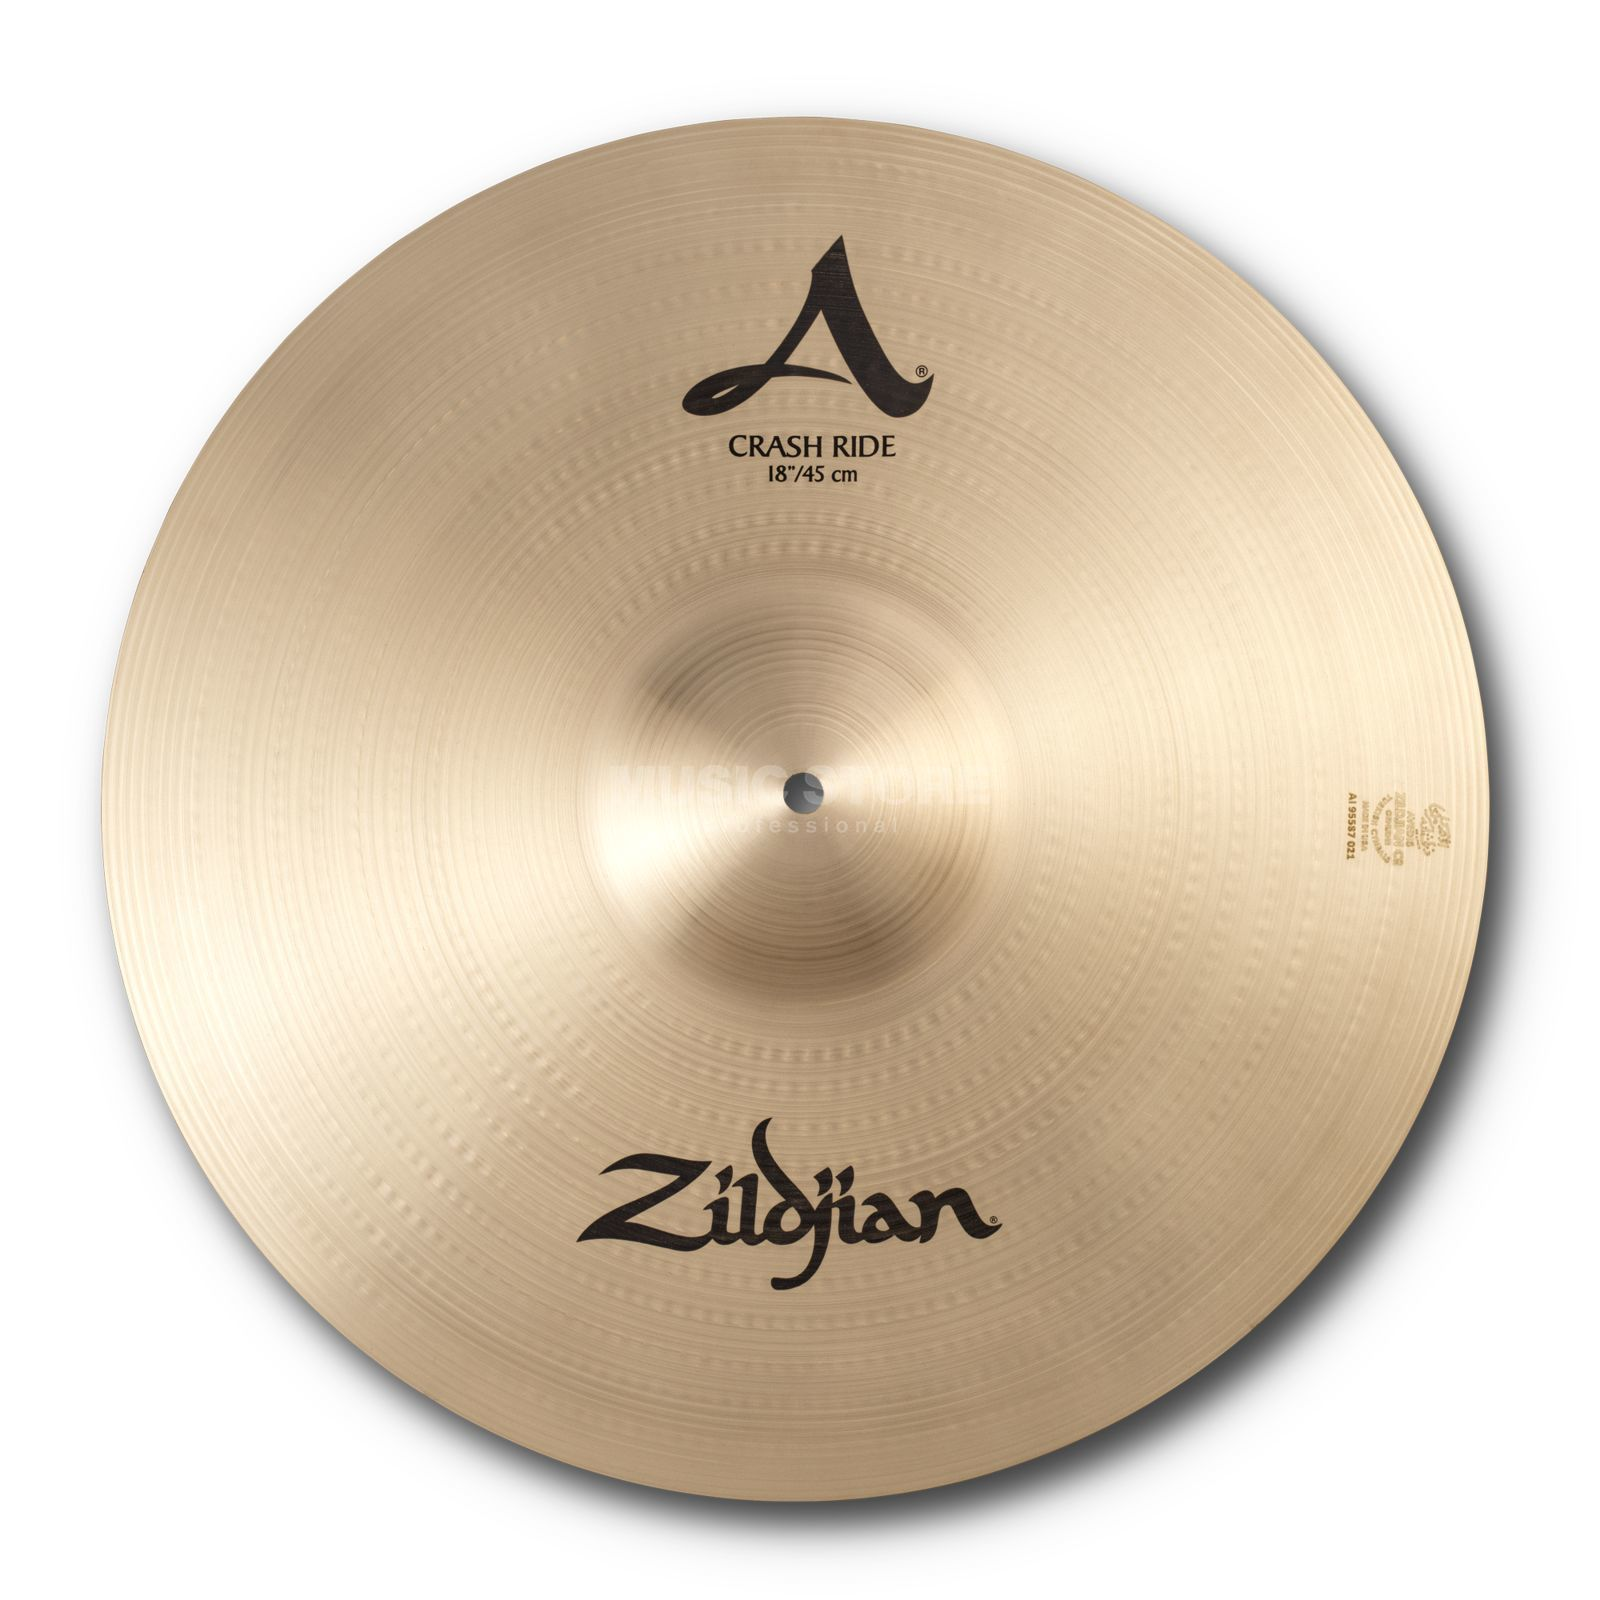 "Zildjian Avedis Crash Ride 18"", Traditional Finish Product Image"